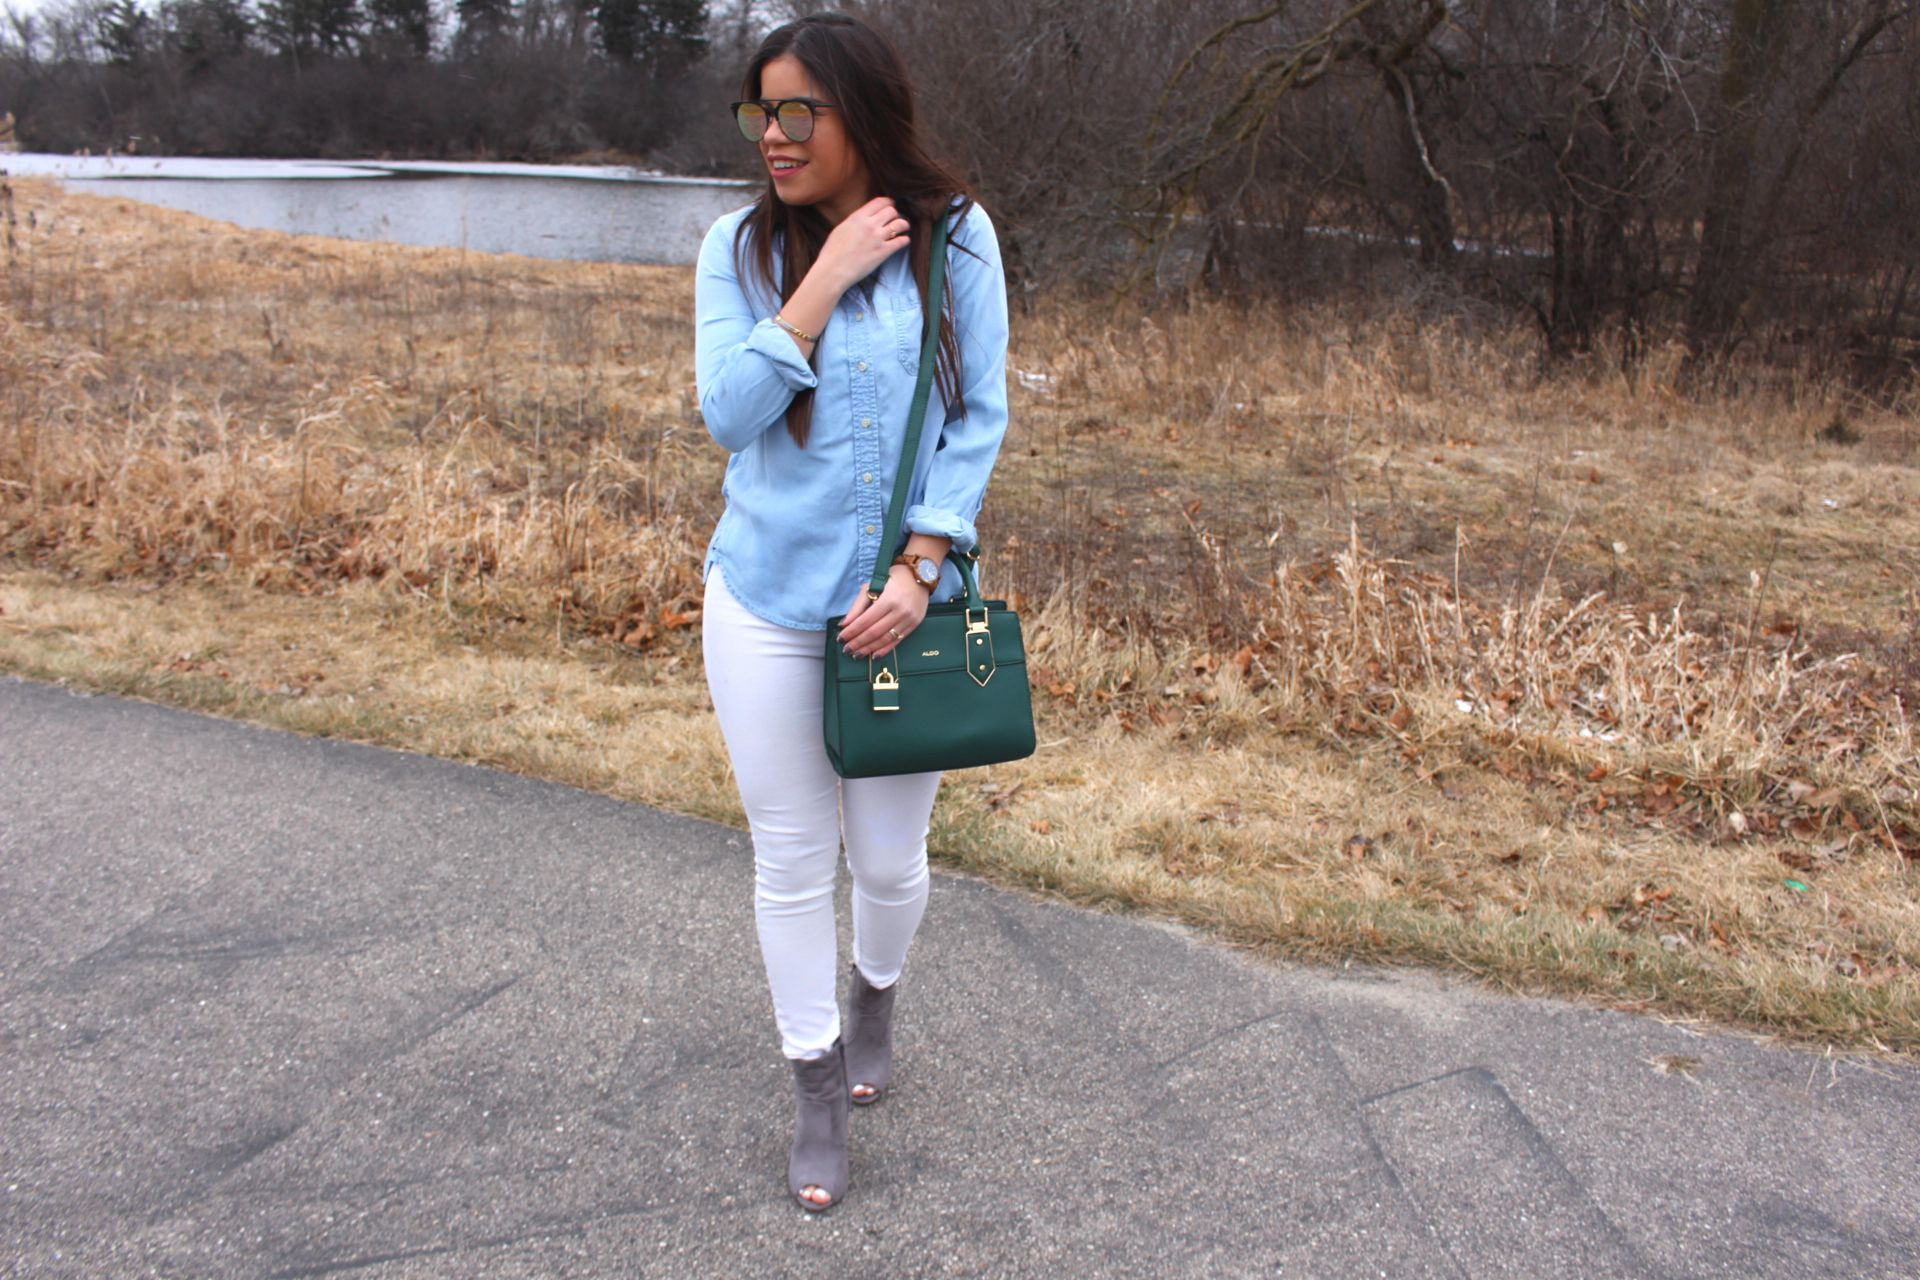 jean top white pants aldo bag jord wood watch fashion nova jean shirt by alejandra avila